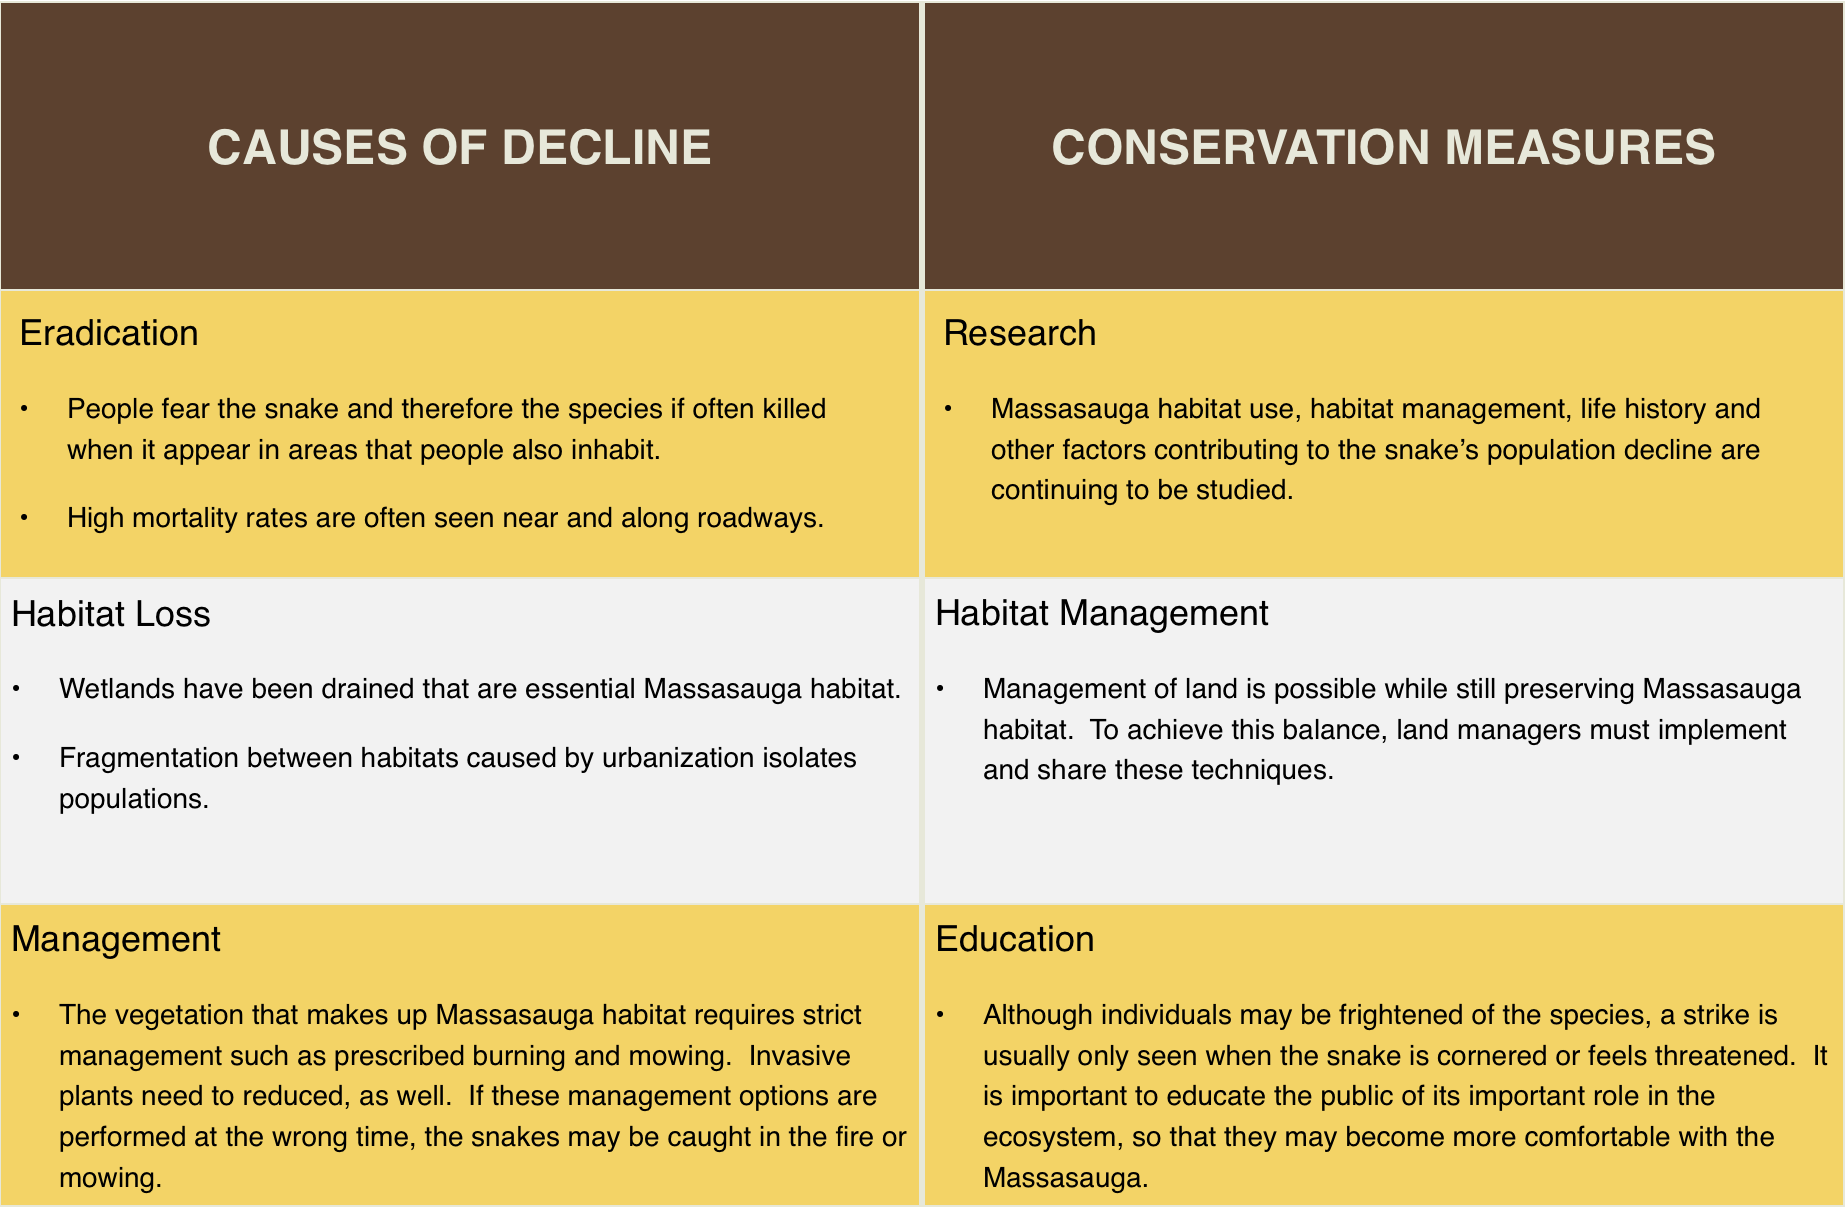 table showing causes of decline and conservation measurements for the eastern massasauga